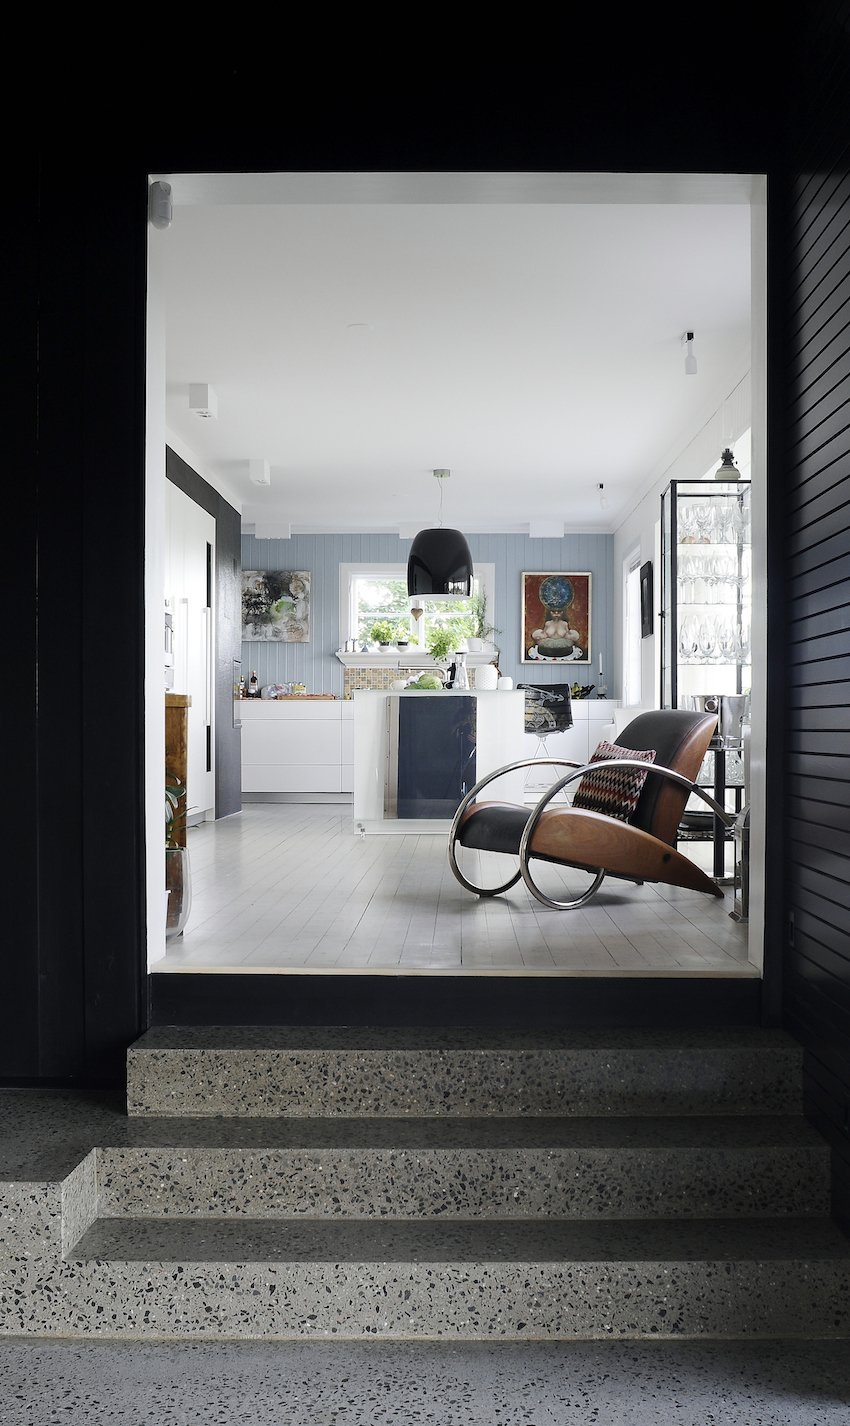 The owners, a couple who work at home, clamored for more space with the new addition. Solbjør created dramatic entrances, such as these stone steps leading into the kitchen, to heighten the contrast between the old and new.